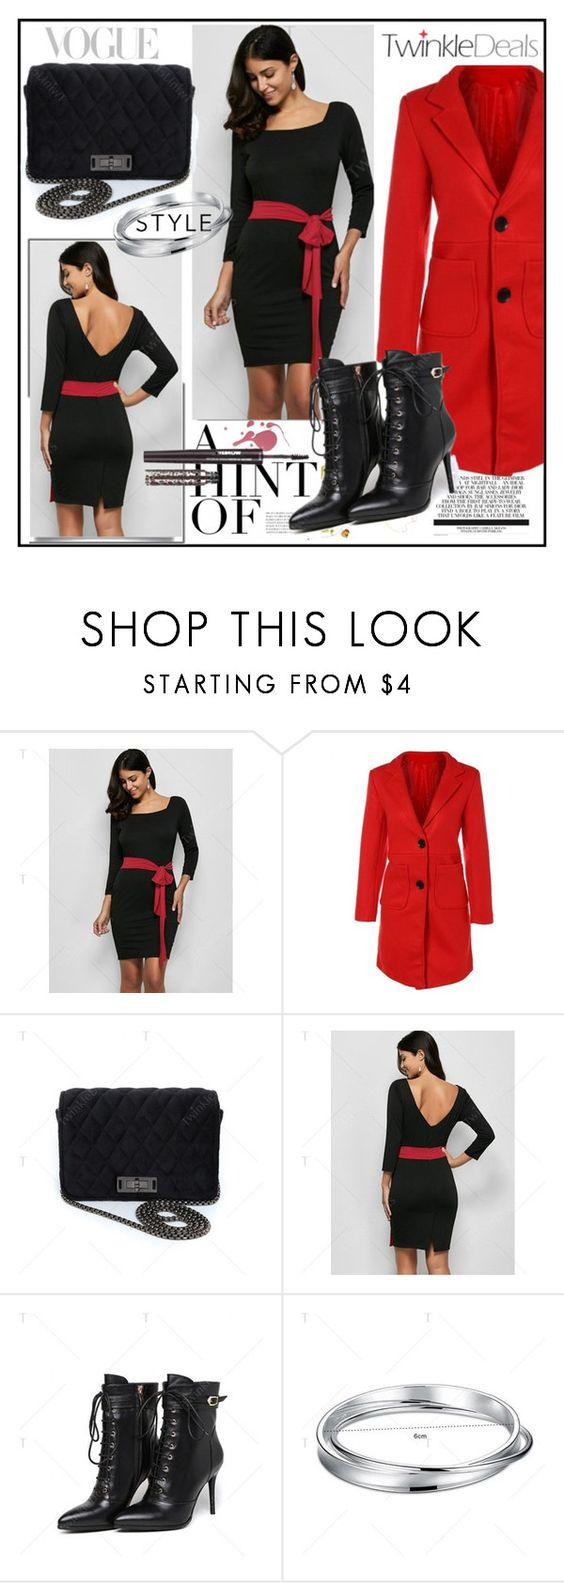 """Fashion"" by lip-balm ❤ liked on Polyvore featuring twinkledeals"